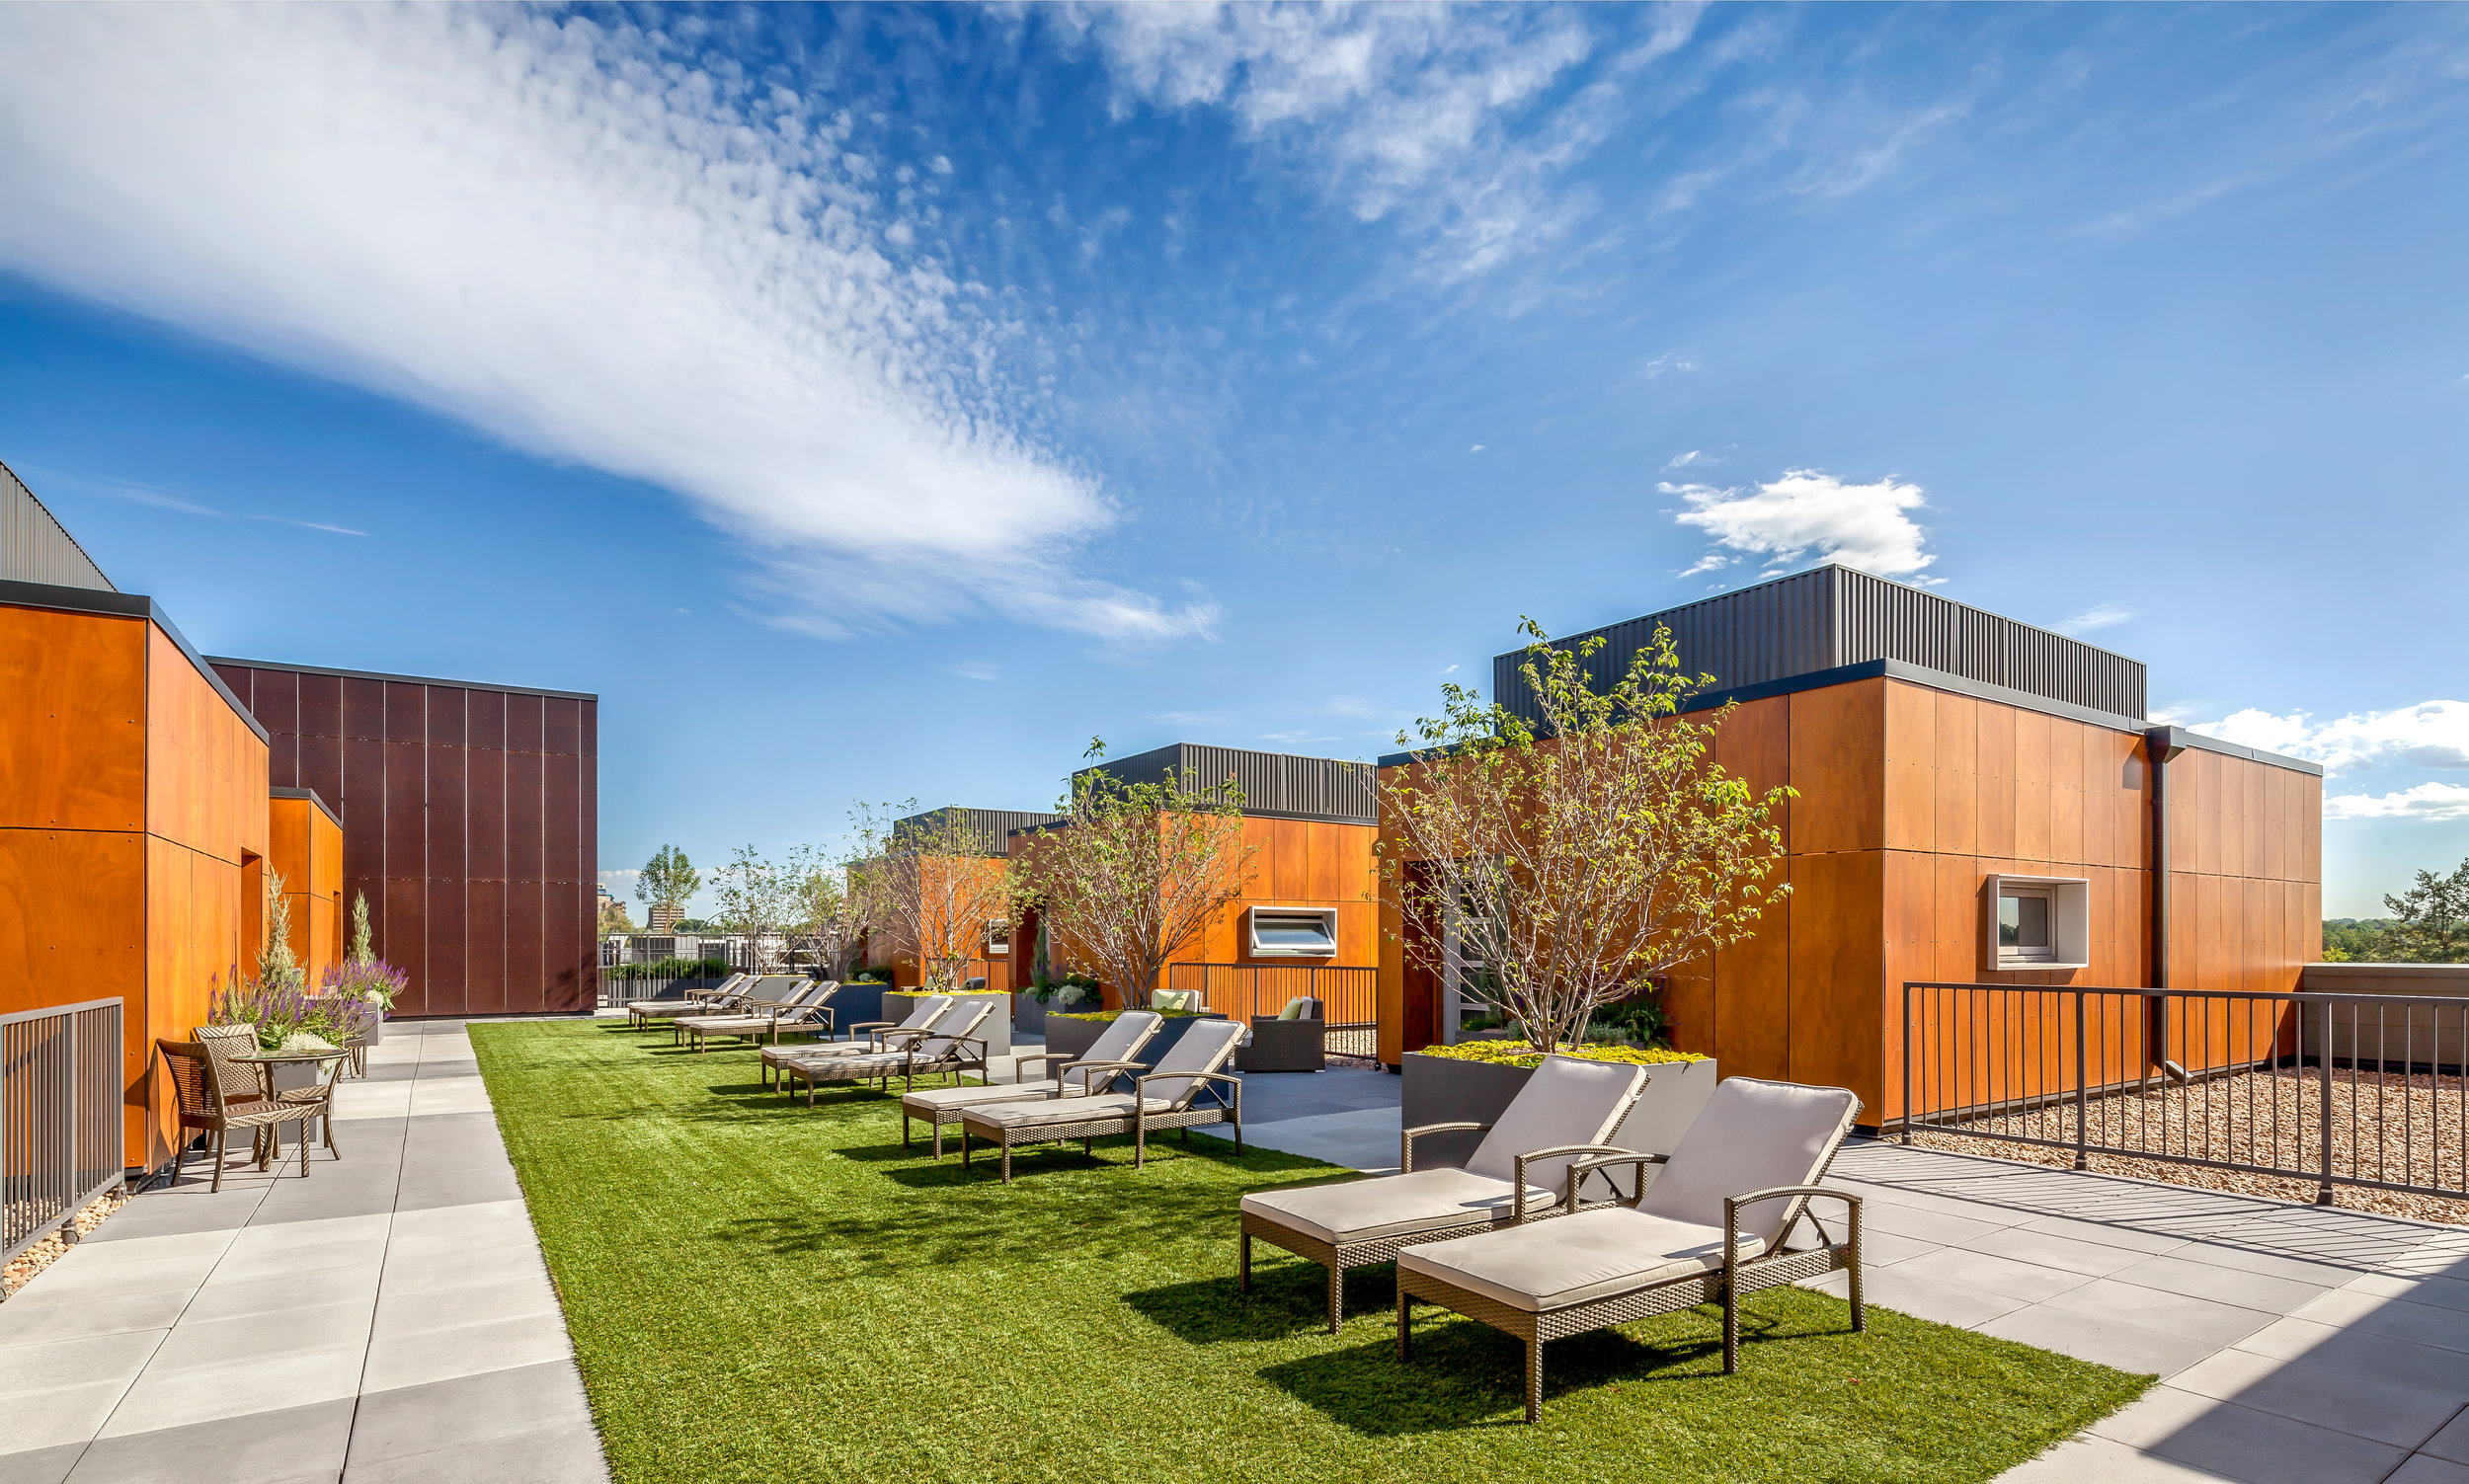 """<img src="""" studioINSITE_My_Block_Wash_Park_Penthouse_Roof_Deck """"alt=""""Urban Living, Multifamily Courtyards, Amenity Deck, Swimming Pool, Spa, Landscape Architecture, Luxury Living, My Block Wash Park, Denver, CO, Colorado Courtyards, Rooftop Amenity  """" title=""""My Block Wash Park  """"/>"""